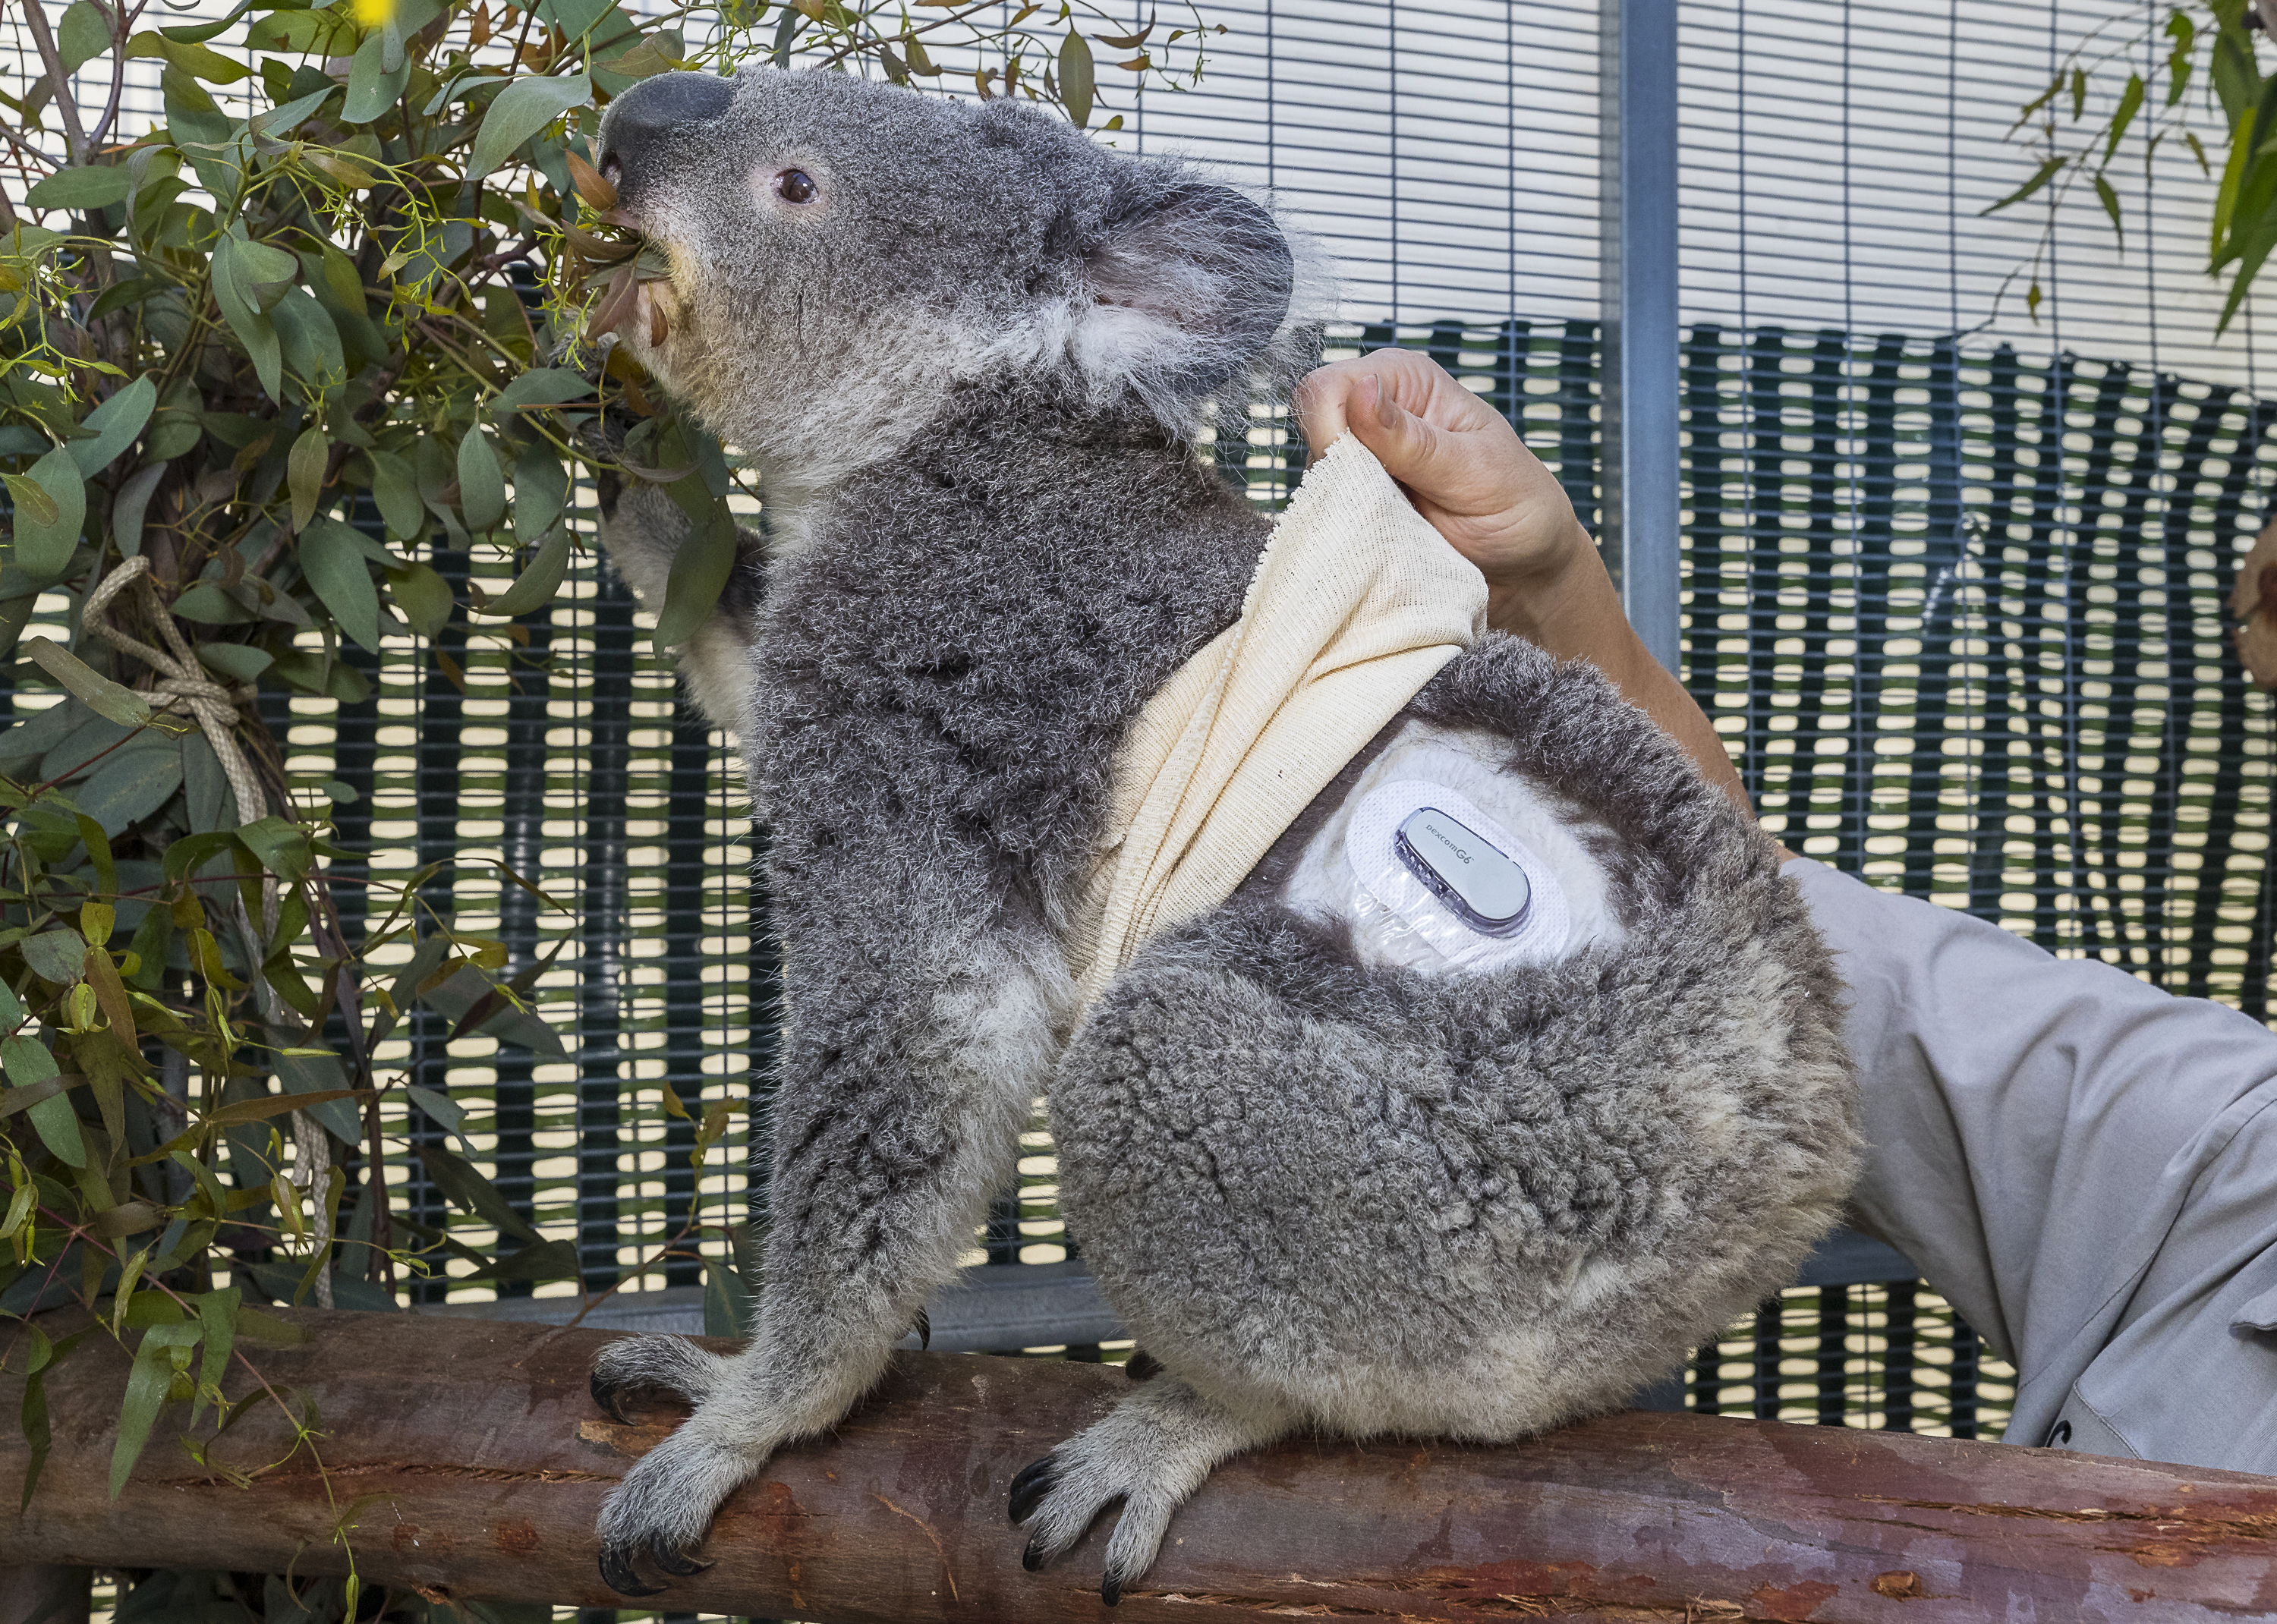 koala with diabetes at san diego zoo receives help from new